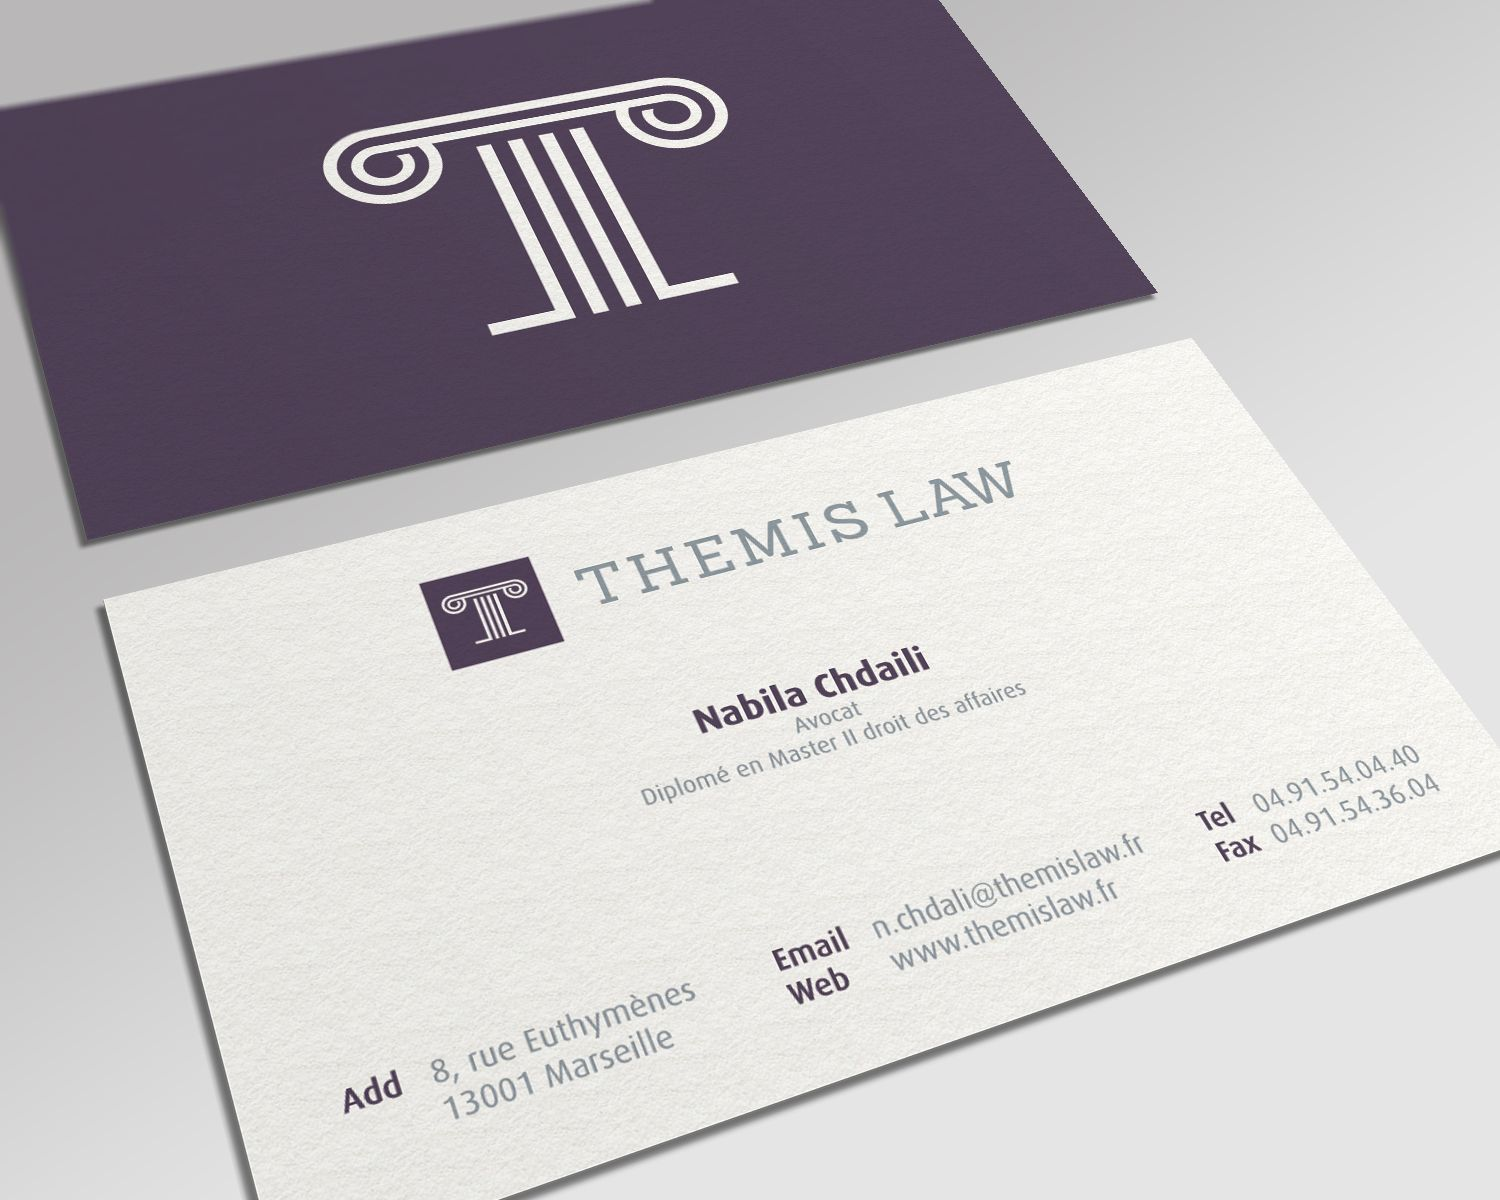 Themis Law Biz Card Mockup Business Card Business Card By Nina